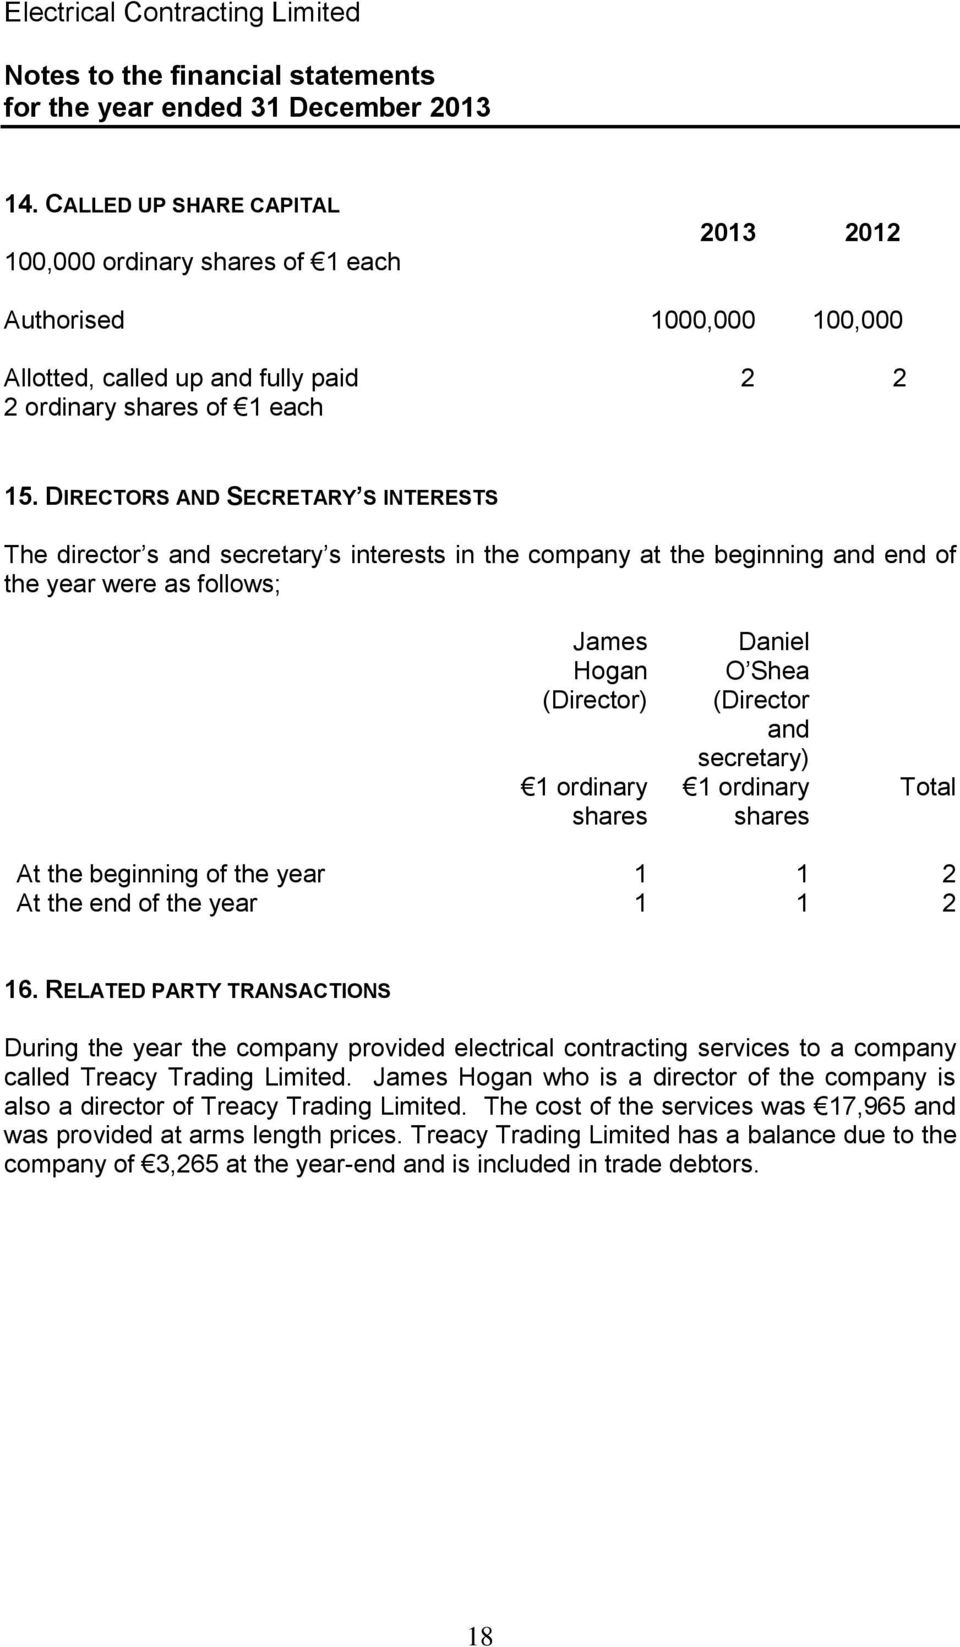 DIRECTORS AND SECRETARY S INTERESTS The director s and secretary s interests in the company at the beginning and end of the year were as follows; James Hogan (Director) 1 ordinary shares Daniel O